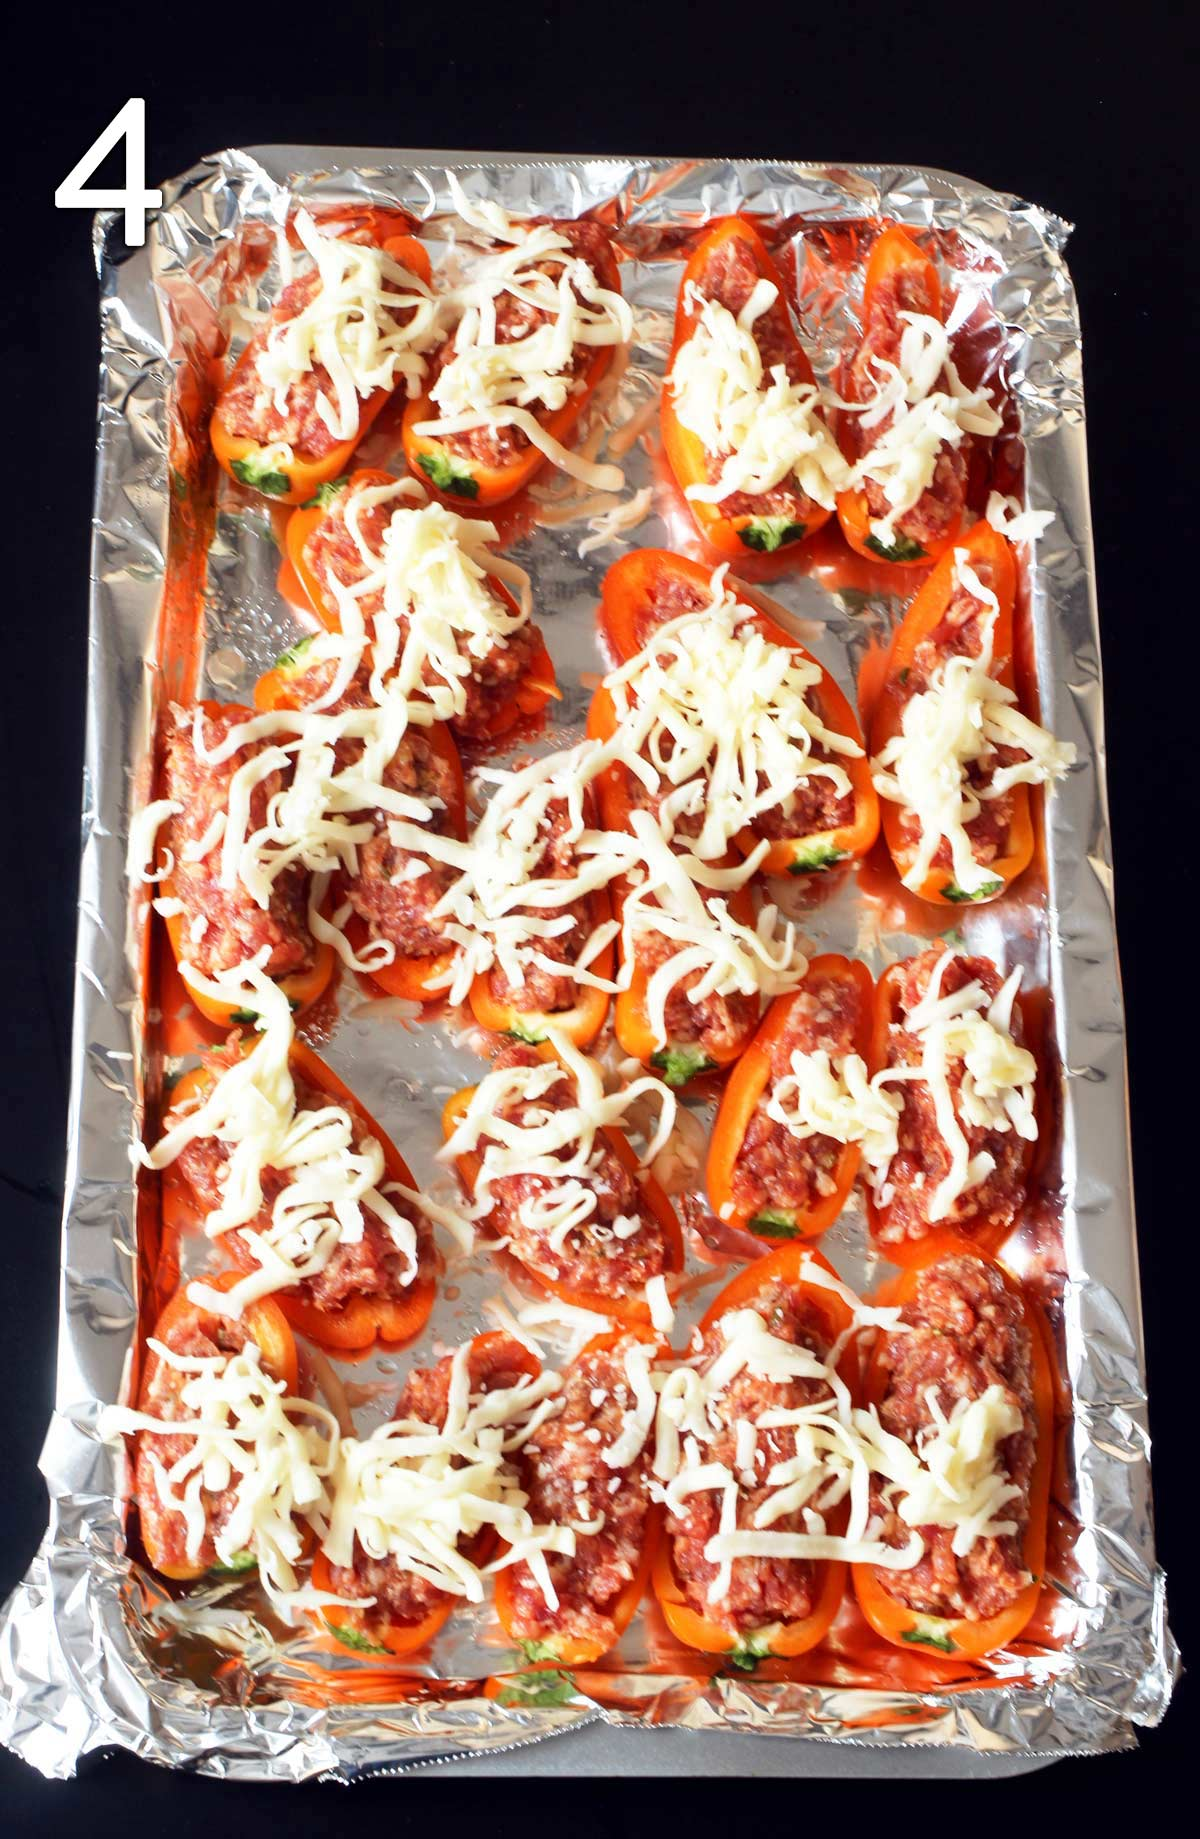 cheese sprinkled over the unbaked peppers on the baking sheet.